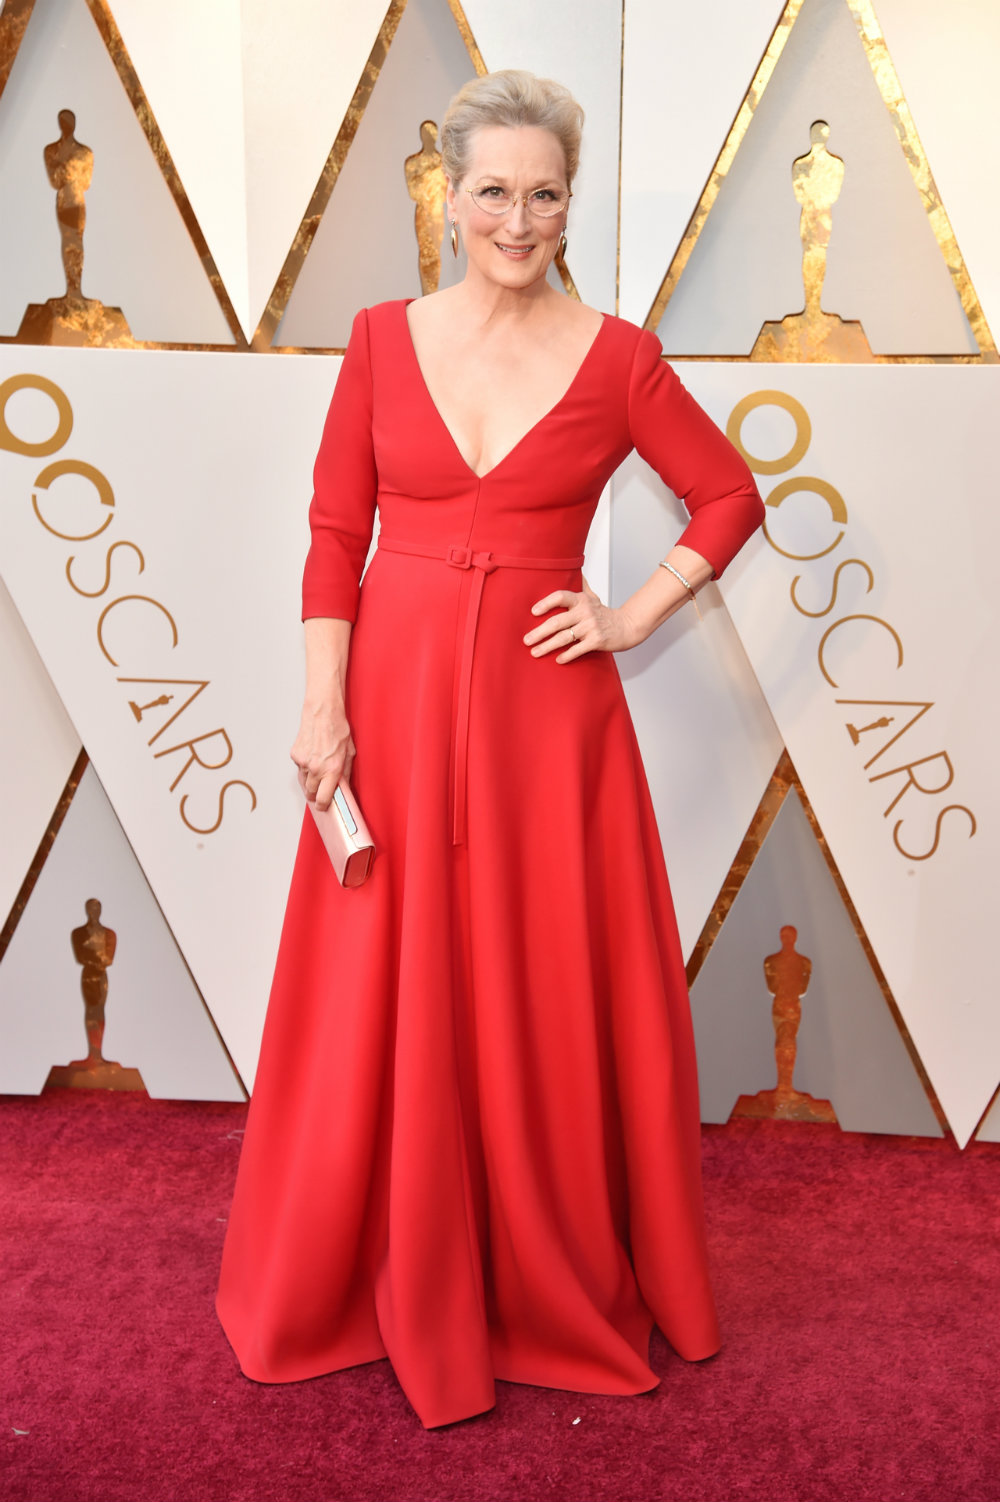 Oscars 2018 Best Dressed Celebrities on the Red Carpet 03 Oscars 2018 Oscars 2018: Best Dressed Celebrities on the Red Carpet Oscars 2018 Best Dressed Celebrities on the Red Carpet 03